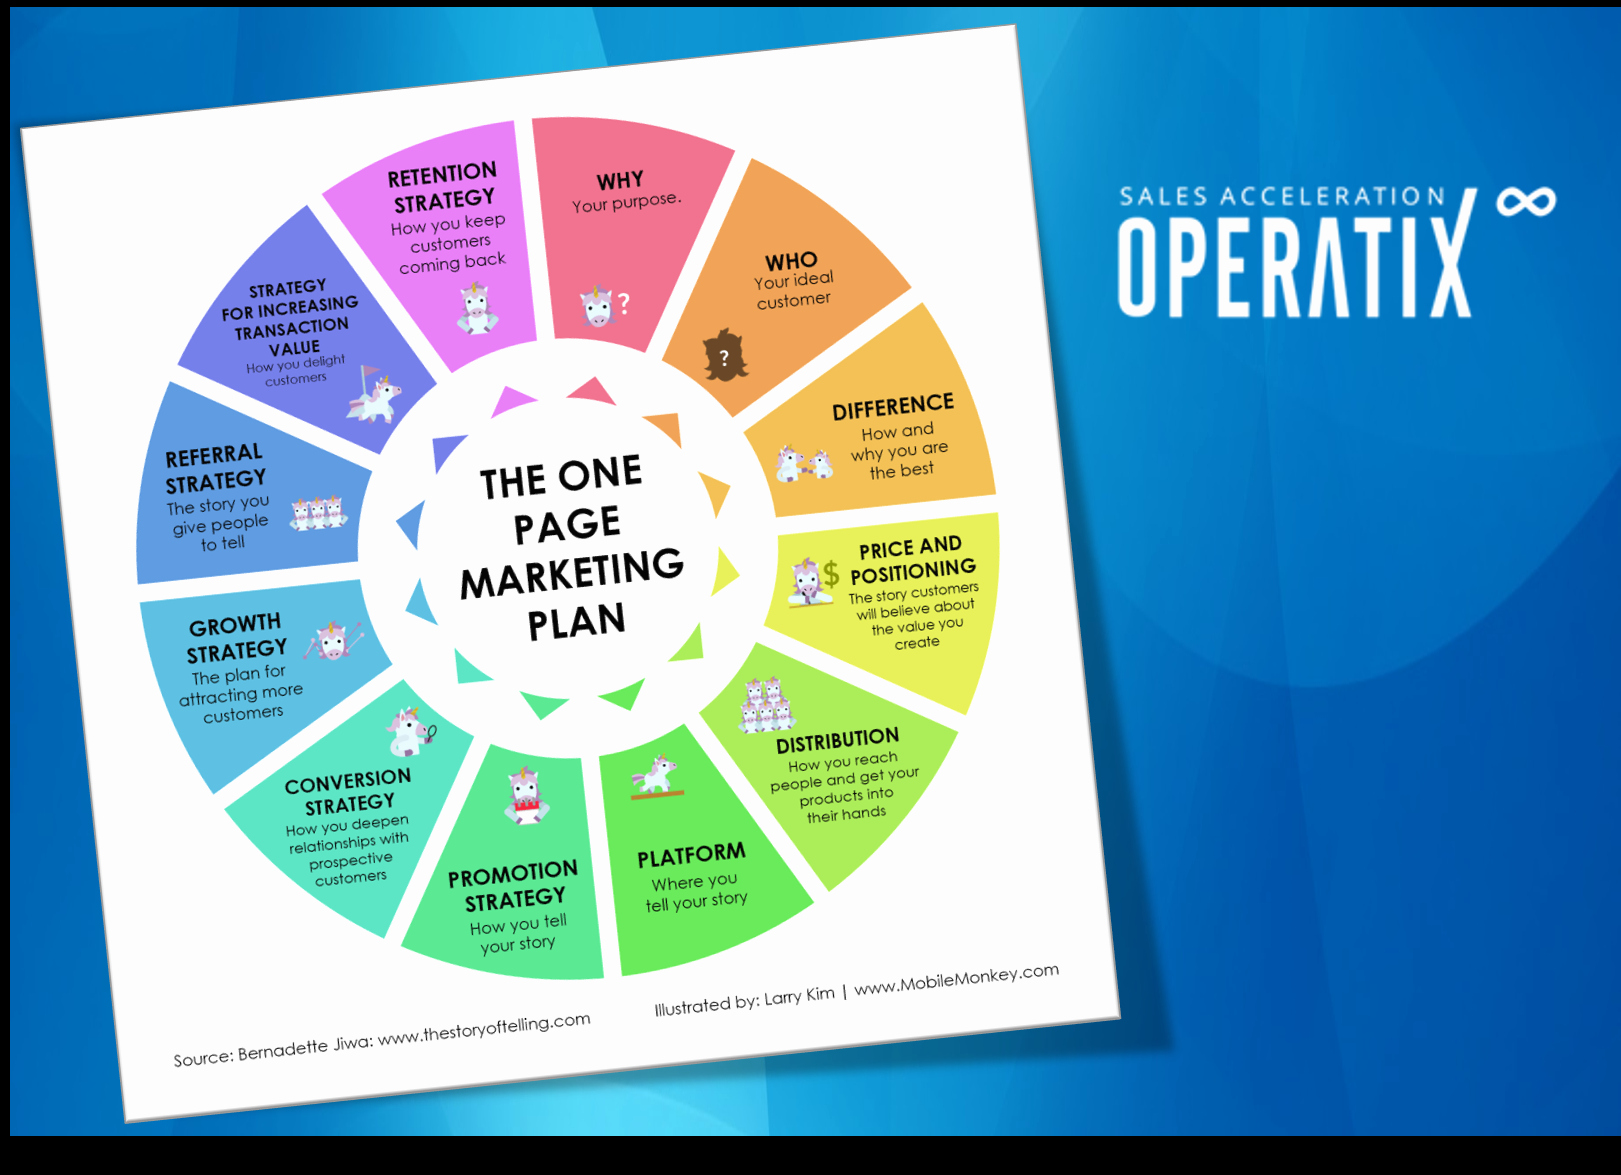 One Page Marketing Plan Unique the E Page Marketing Plan